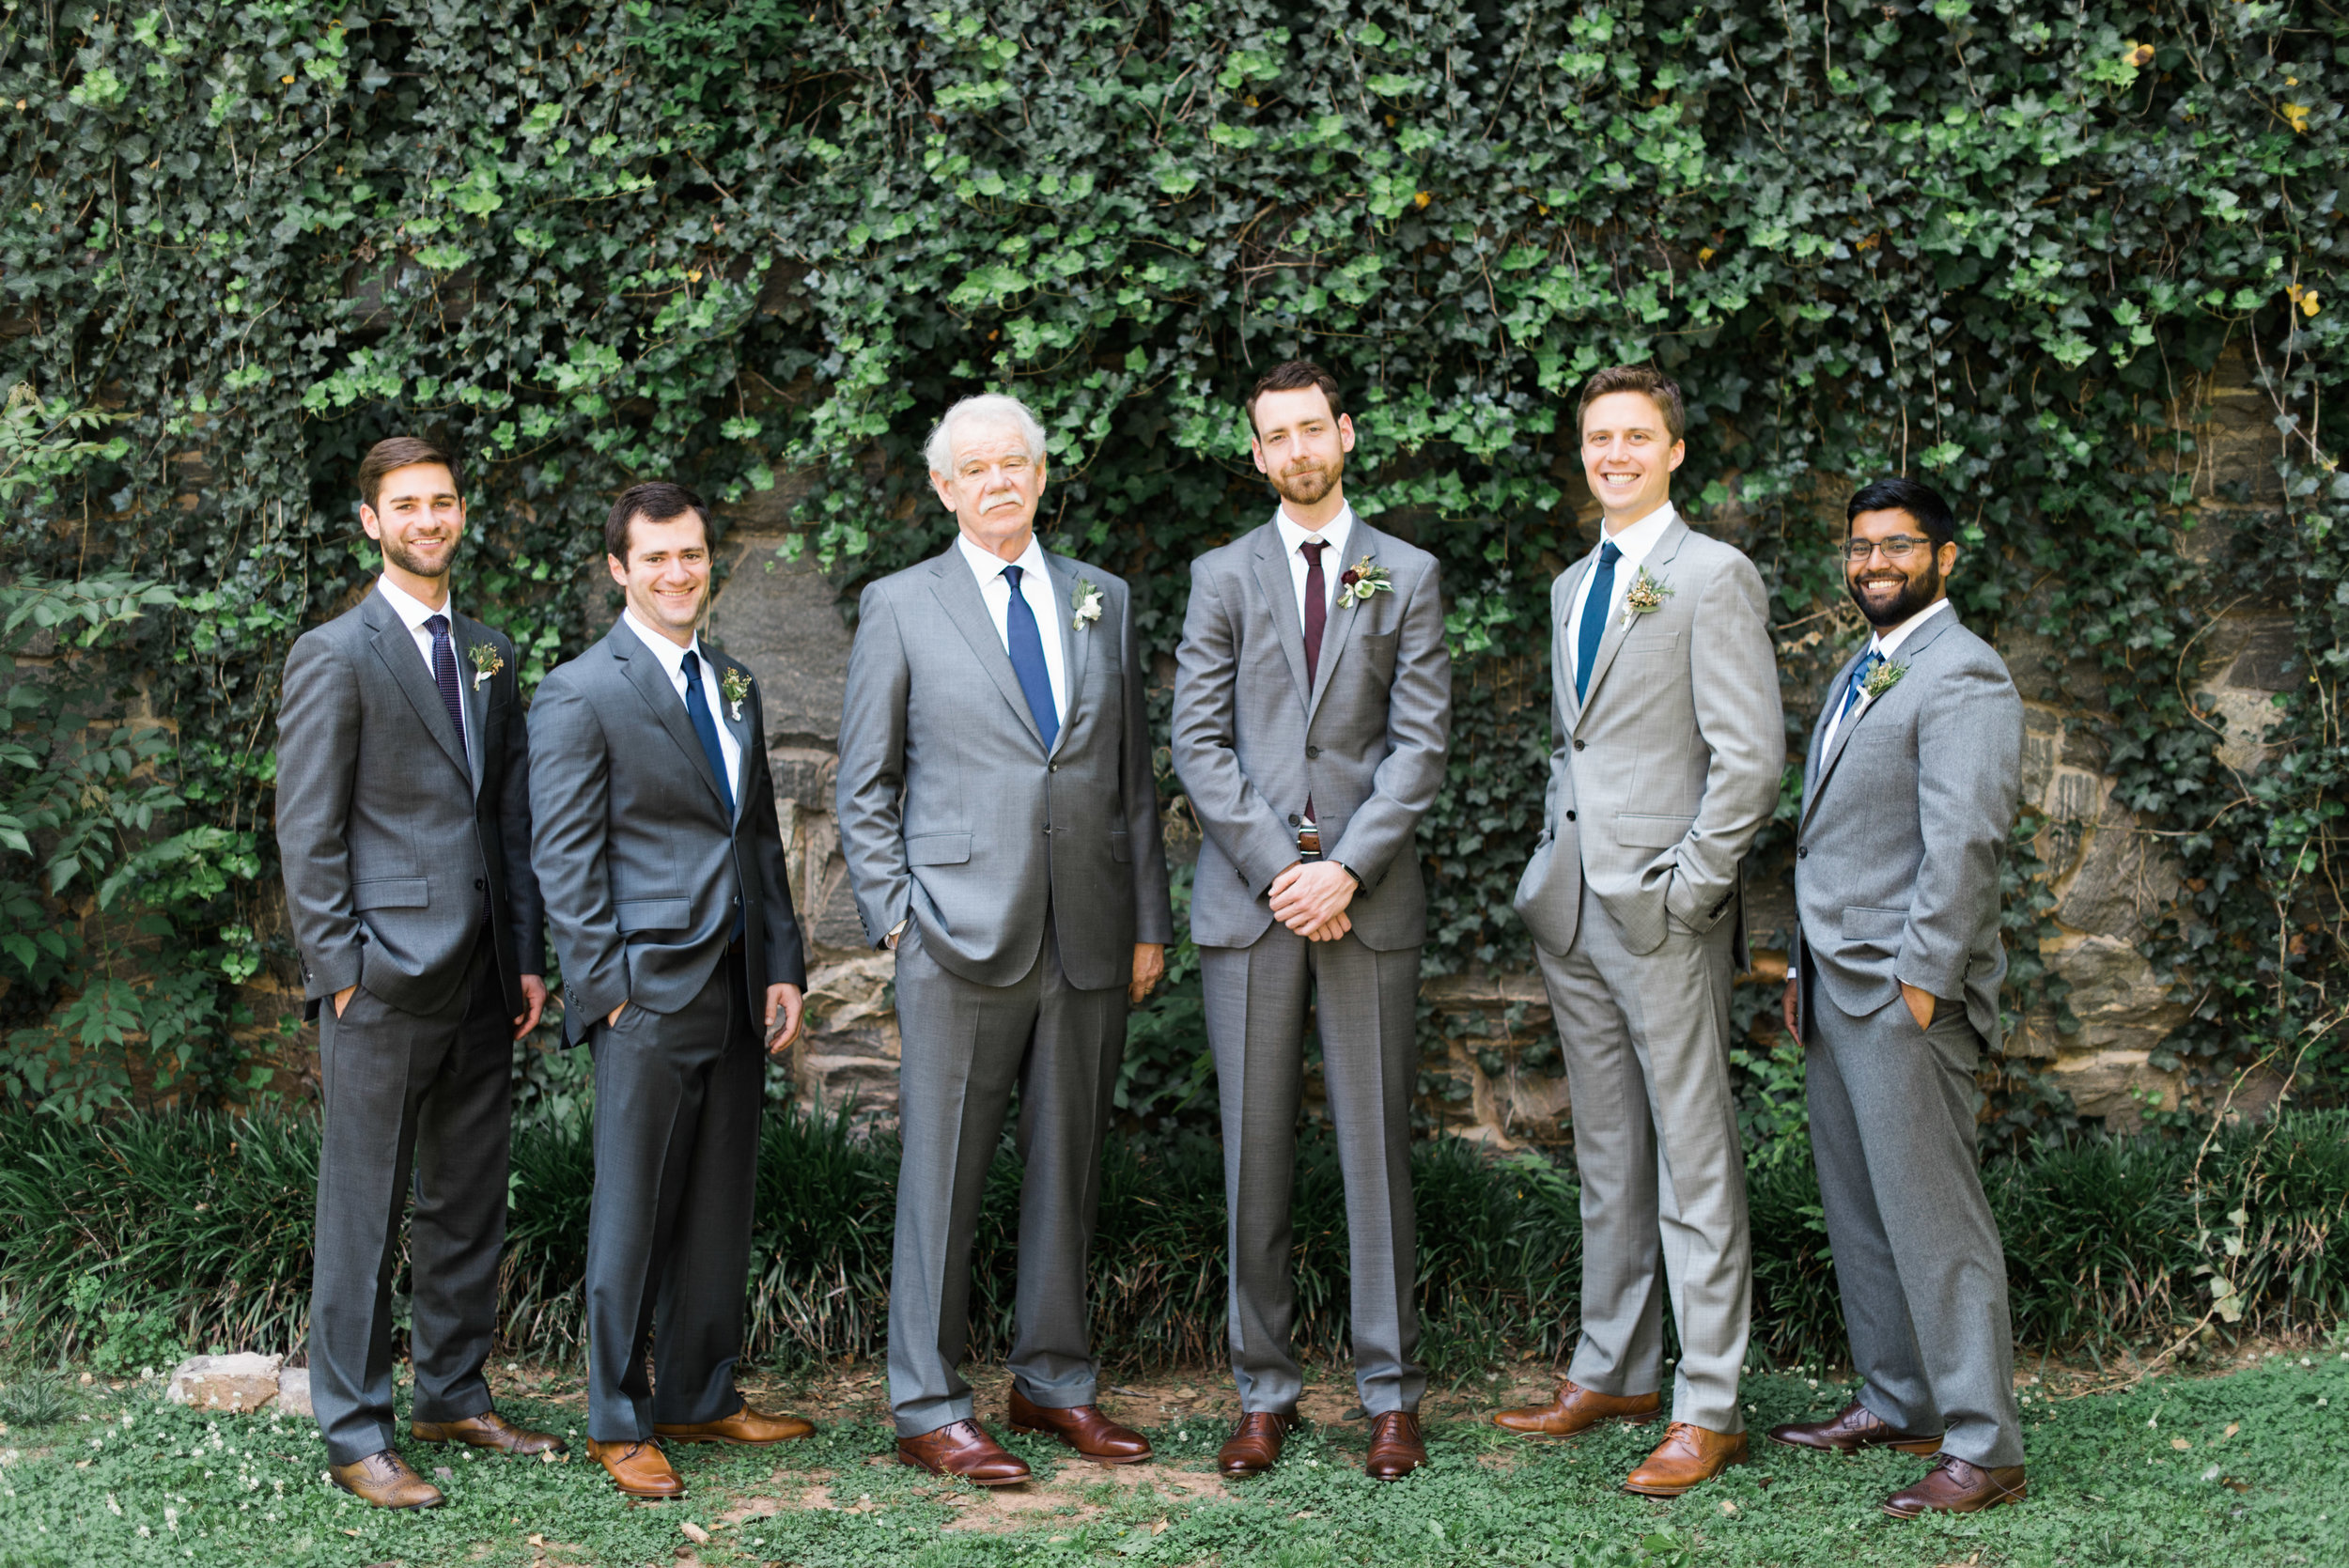 groomsmen the greystone at piedmont park atlanta wedding photographer